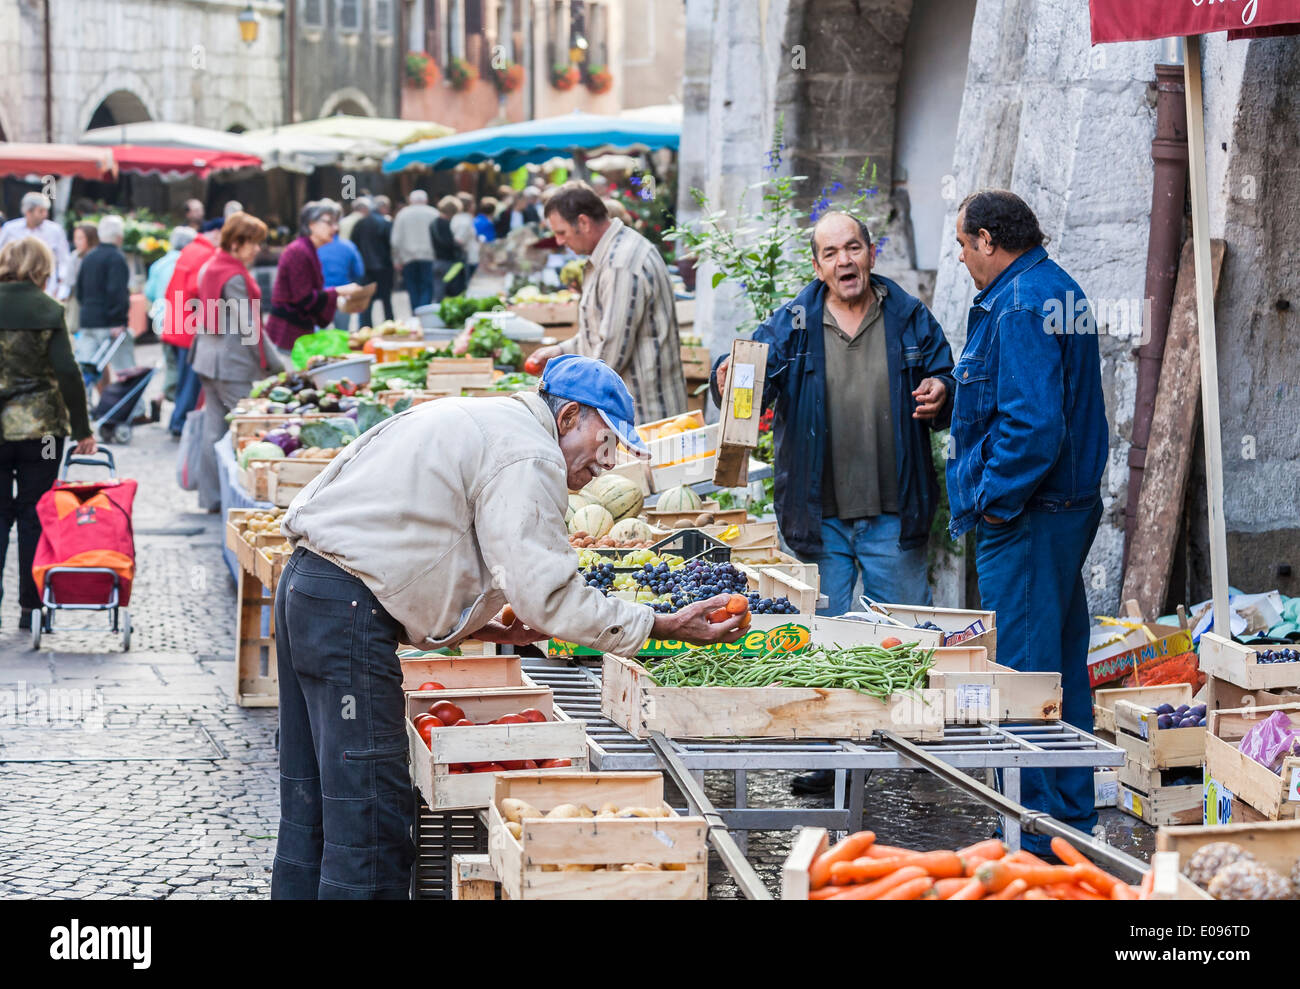 Elderly Frenchman inspects produce at a fruit and vegetable market stall in Annecy, France as stallholders converse - Stock Image